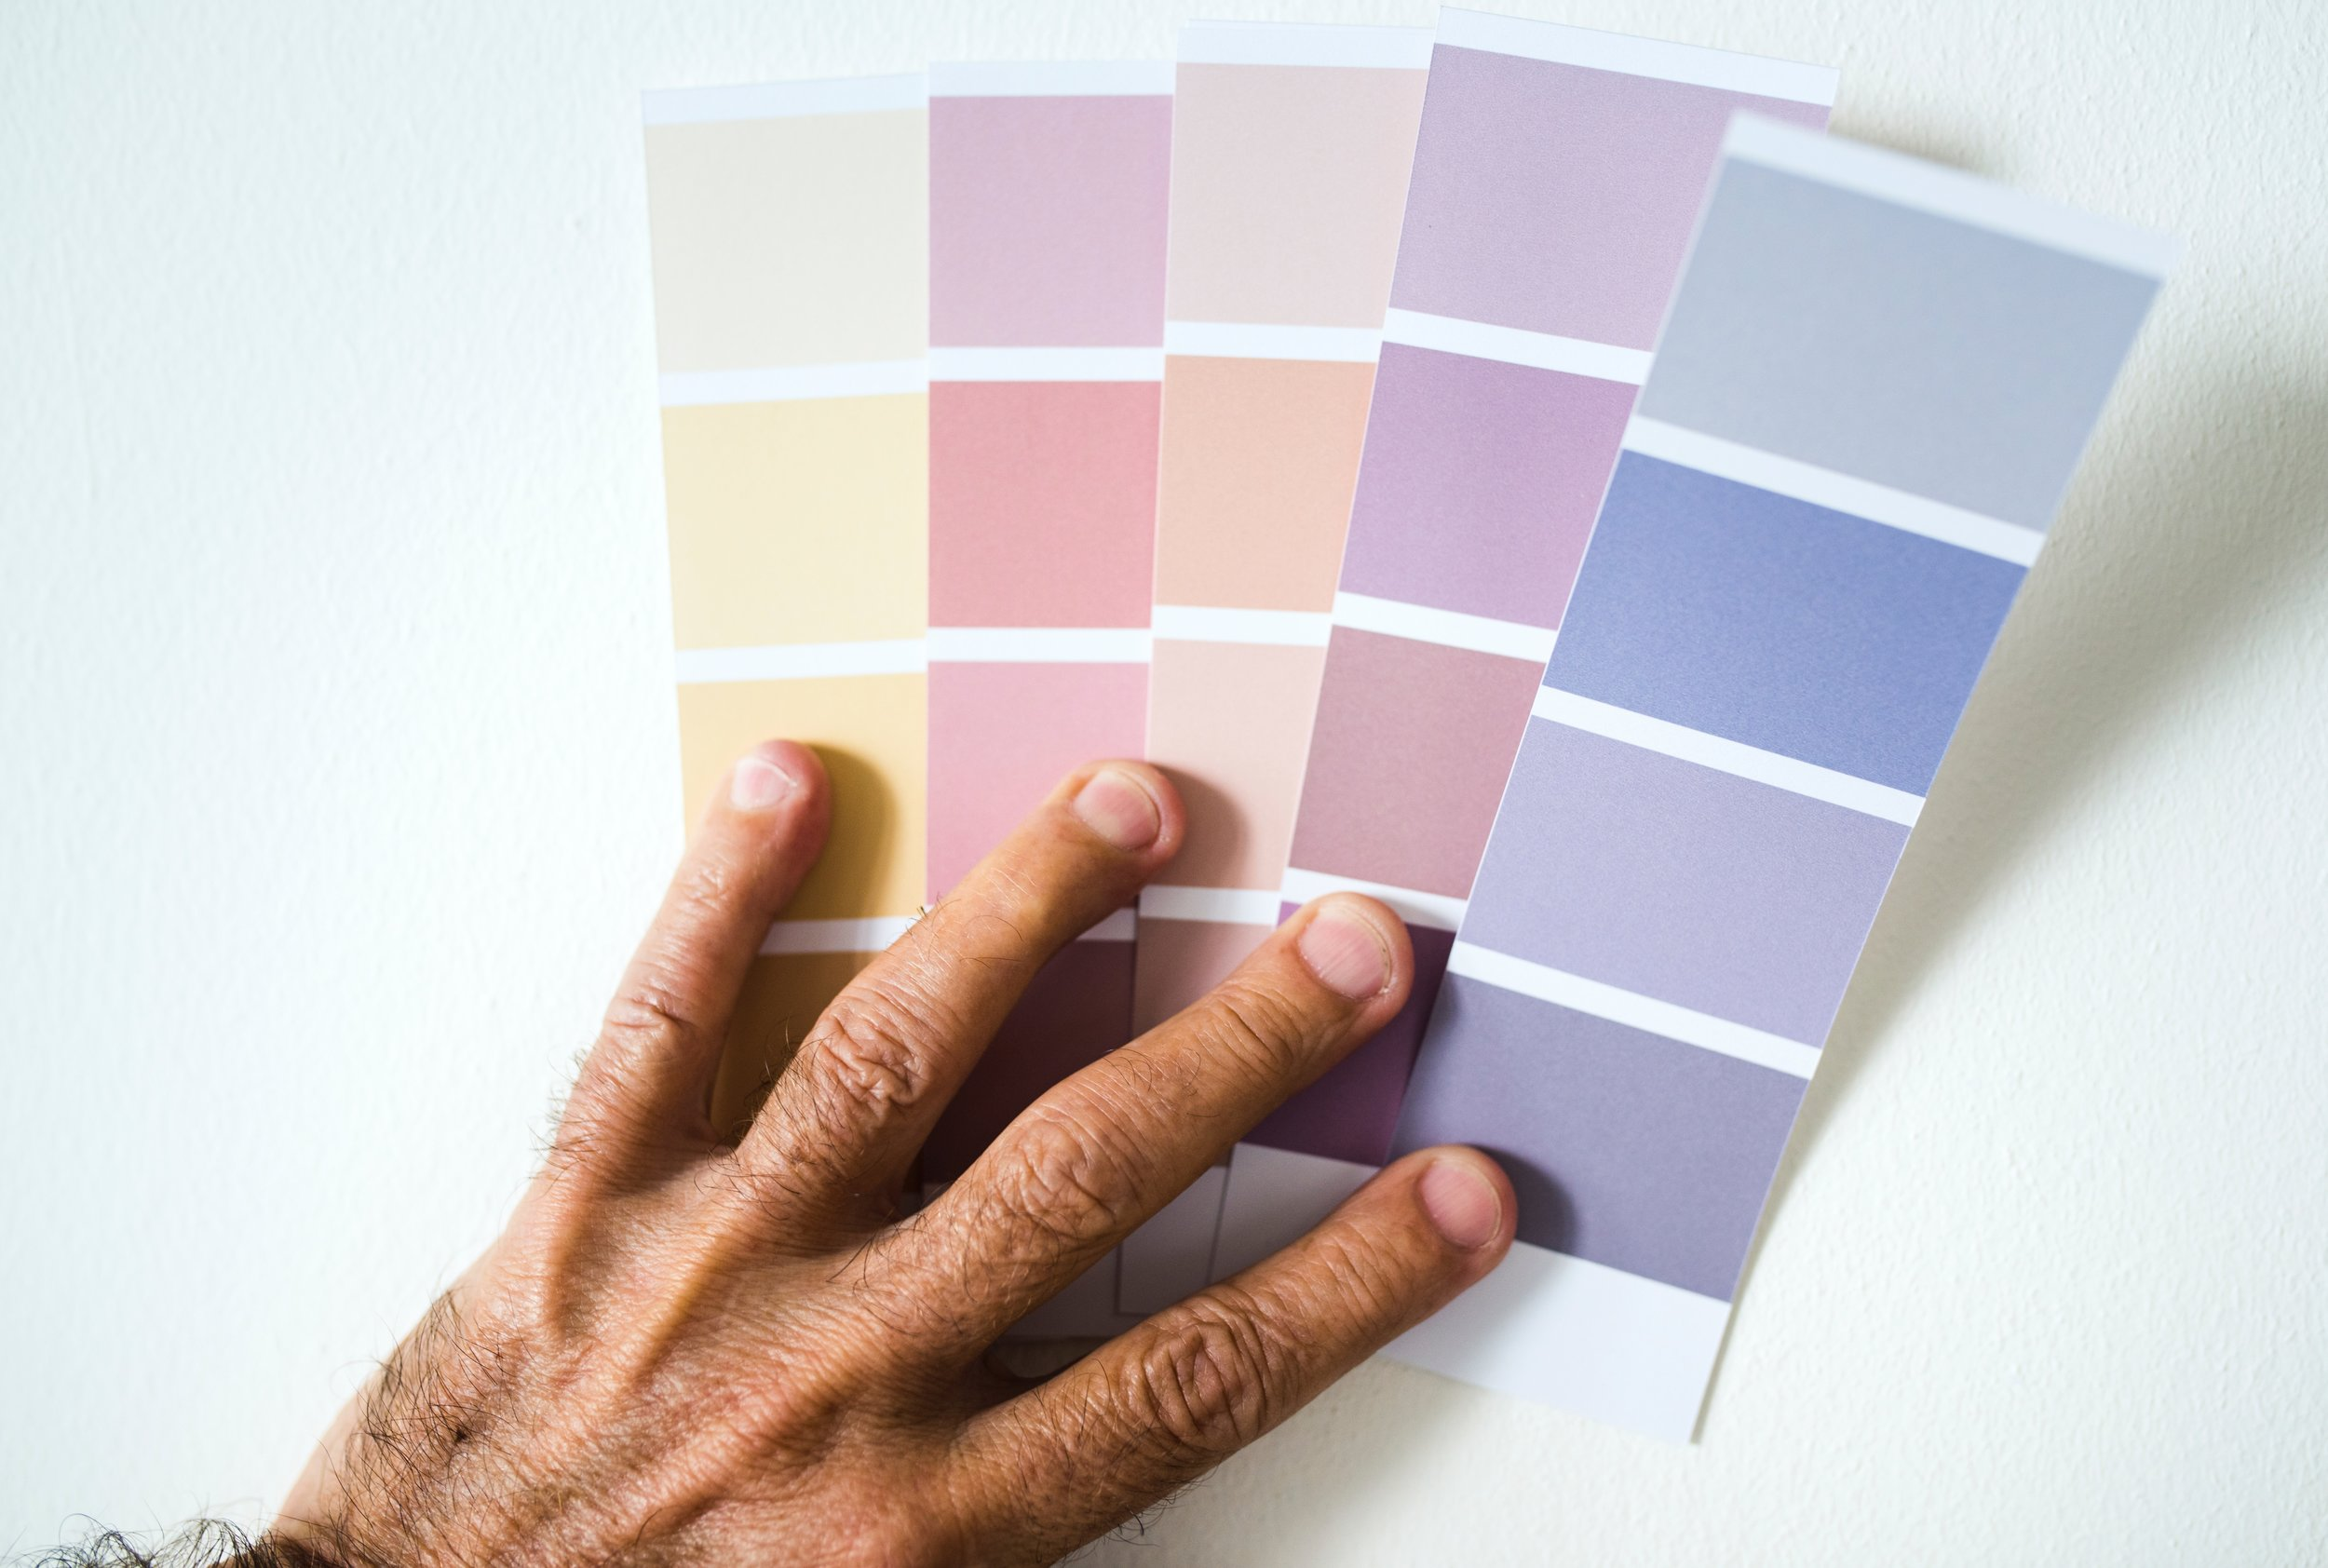 choices-close-up-color-palette-1573825.jpg